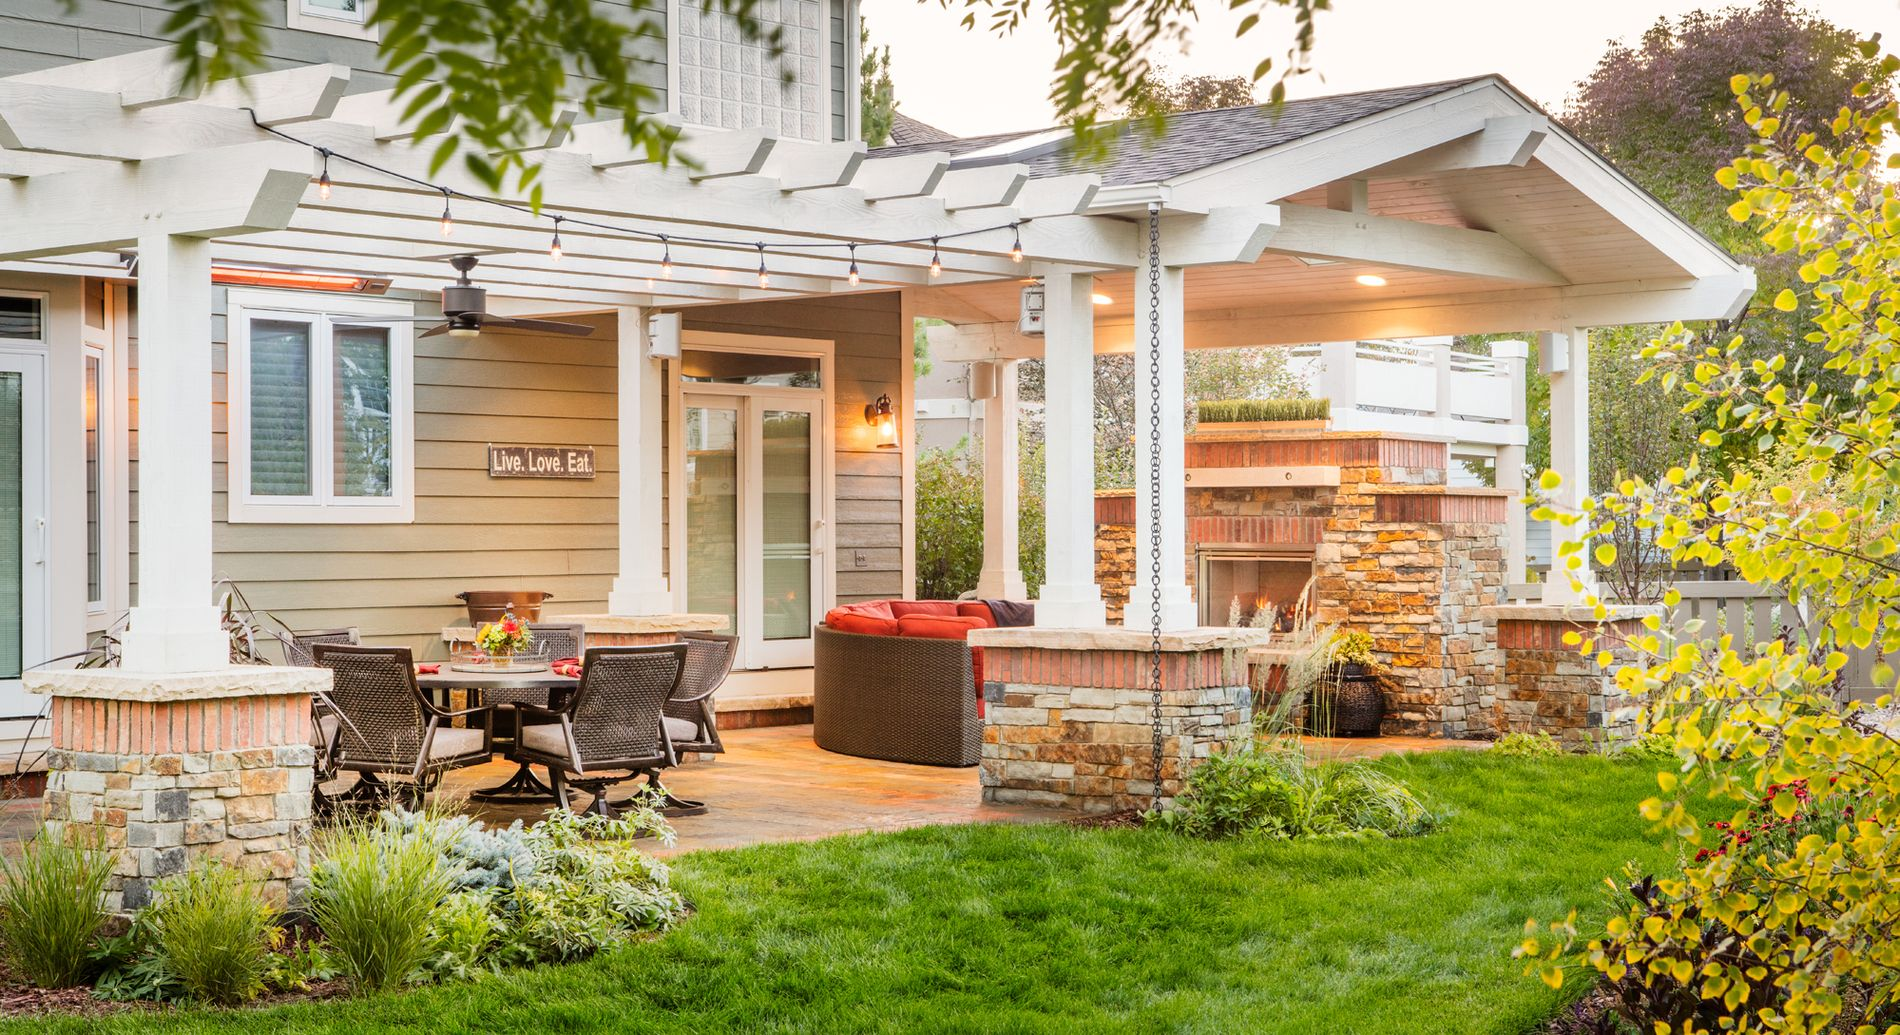 White gable roof with pergola covering an outdoor living space